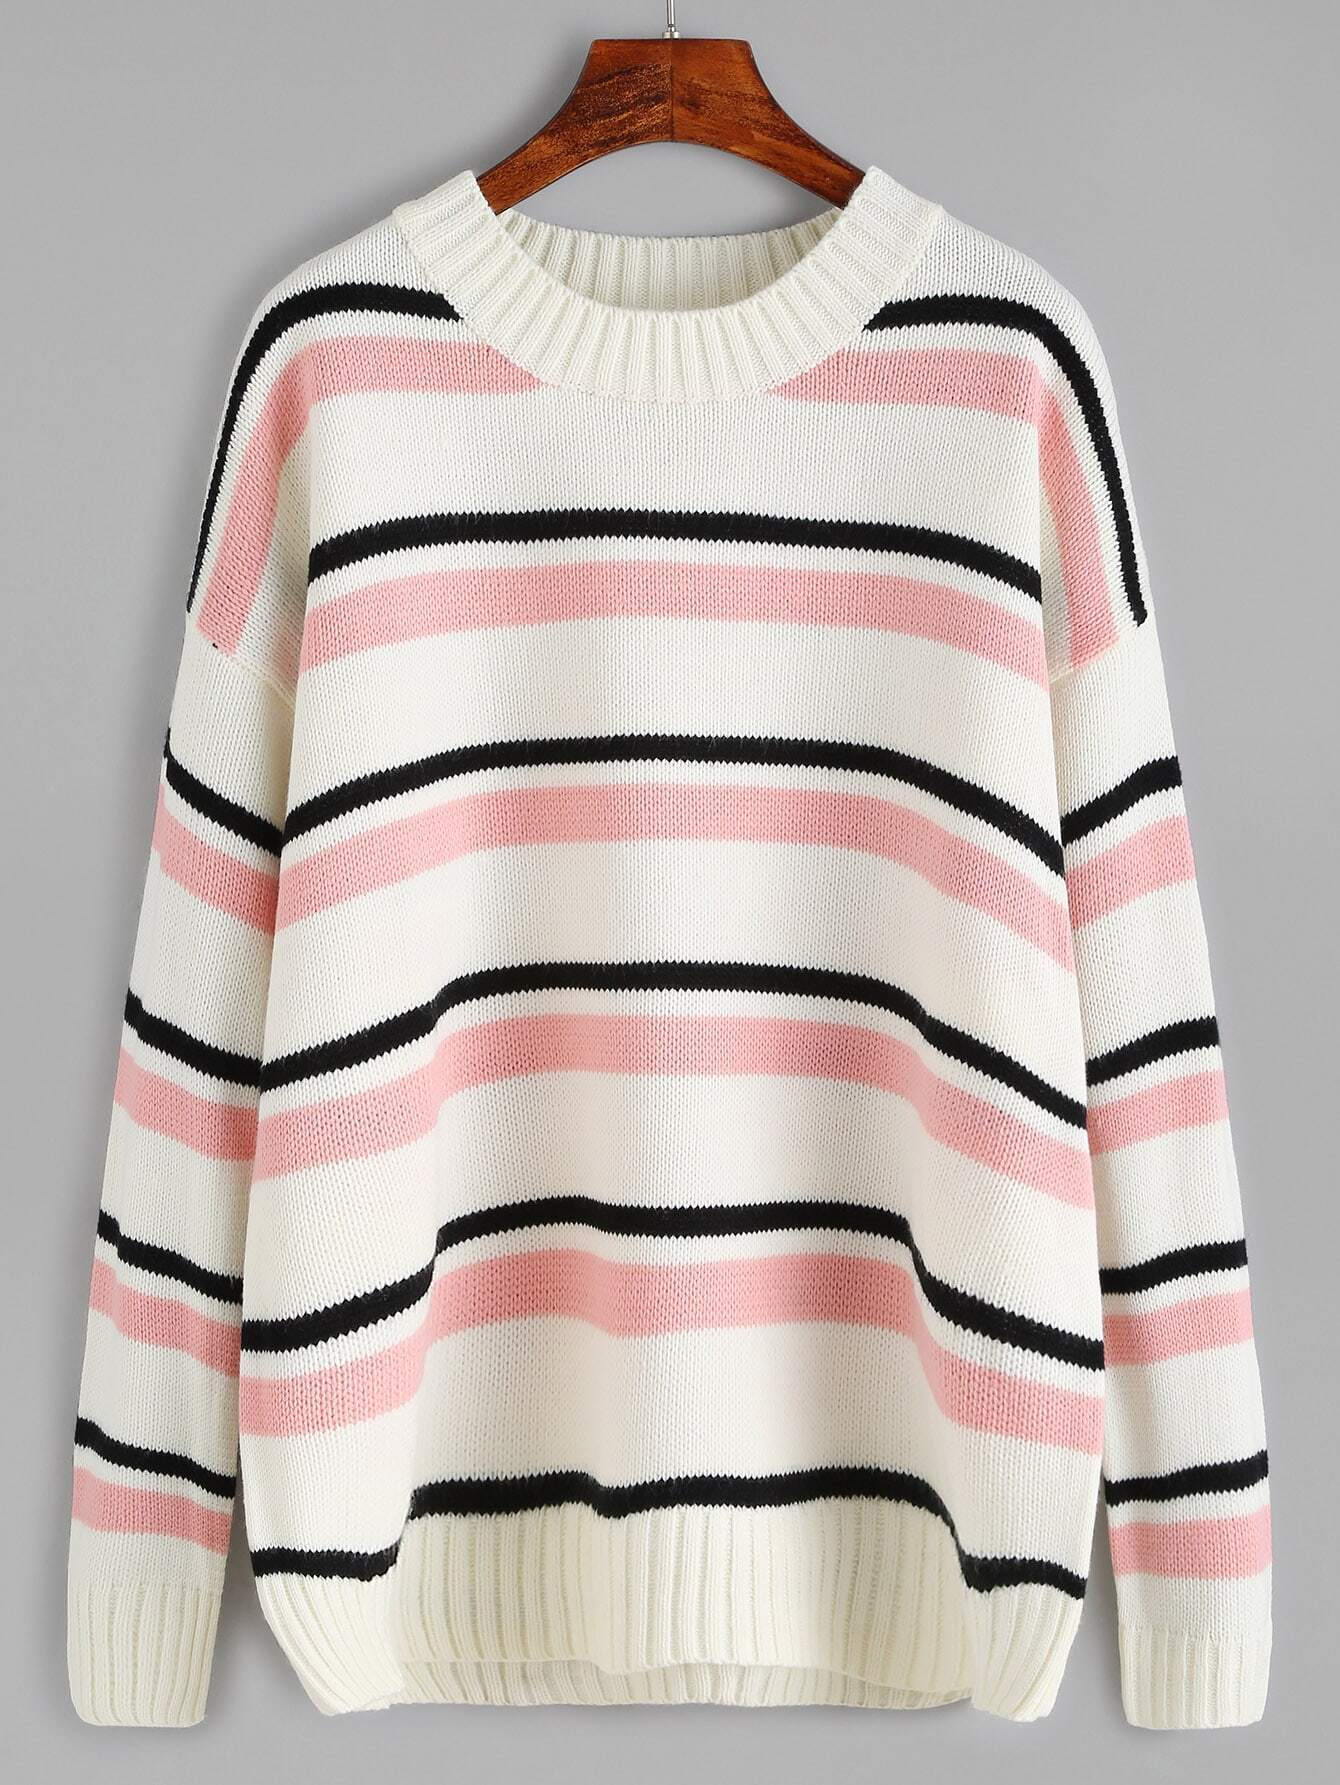 Striped Dropped Shoulder Seam Sweater